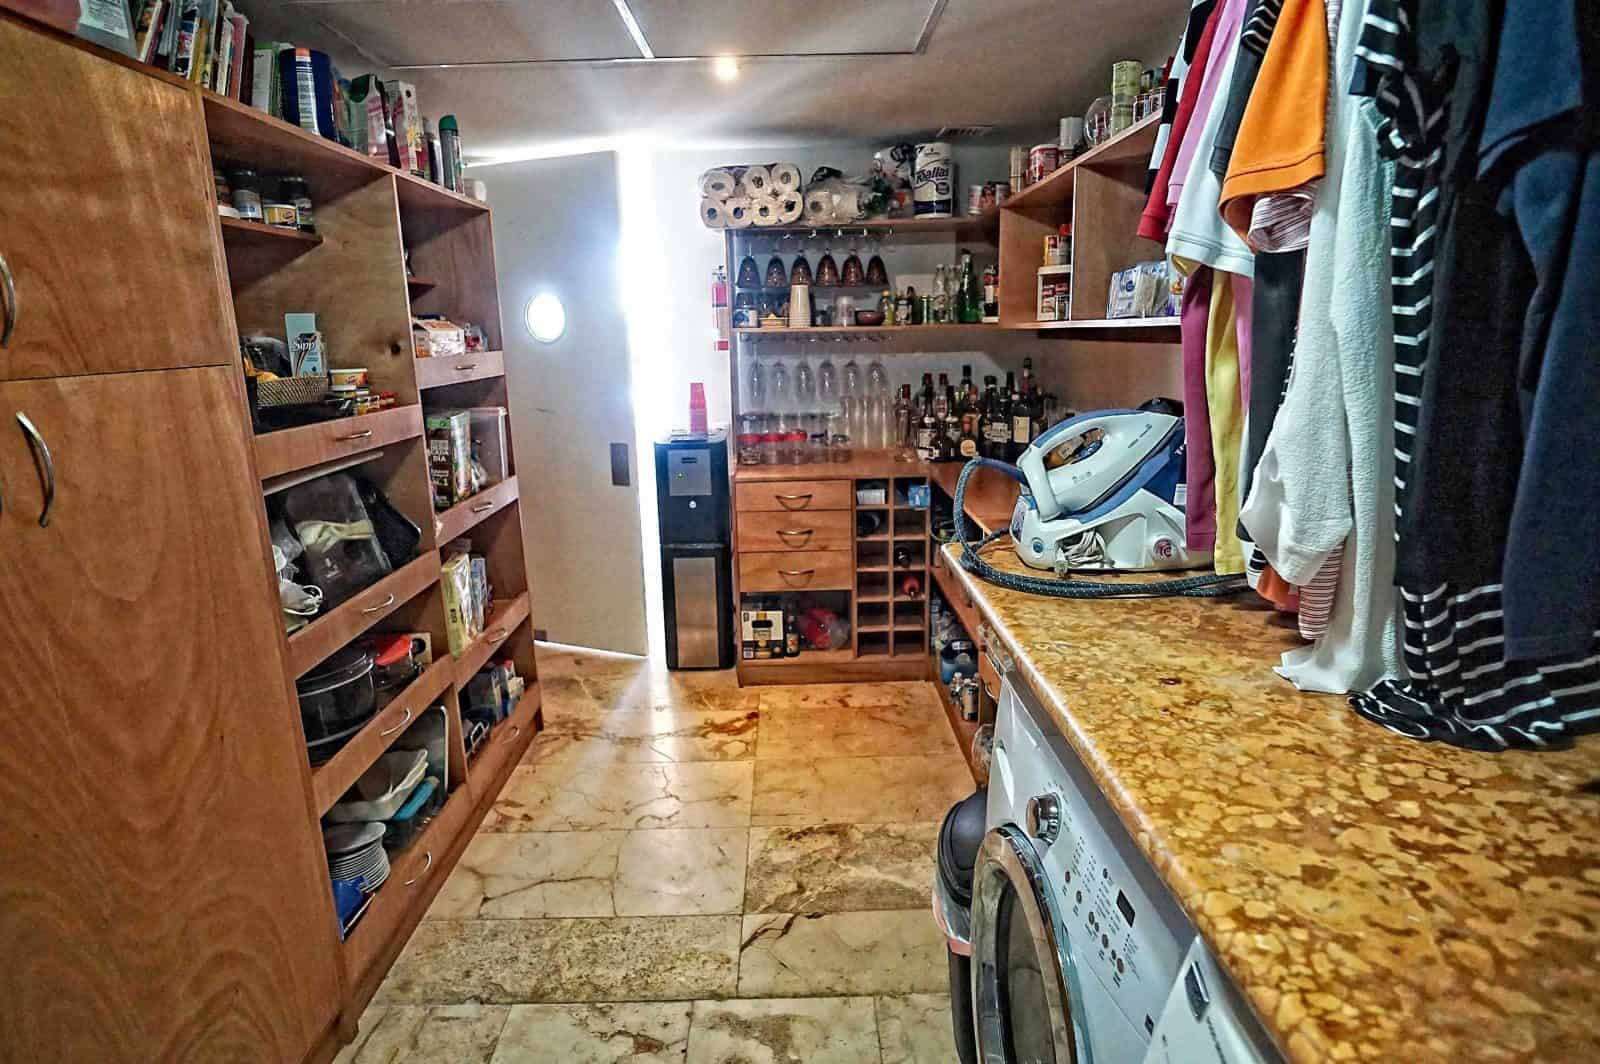 Magia penthouse enormous chef's kitchen pantry